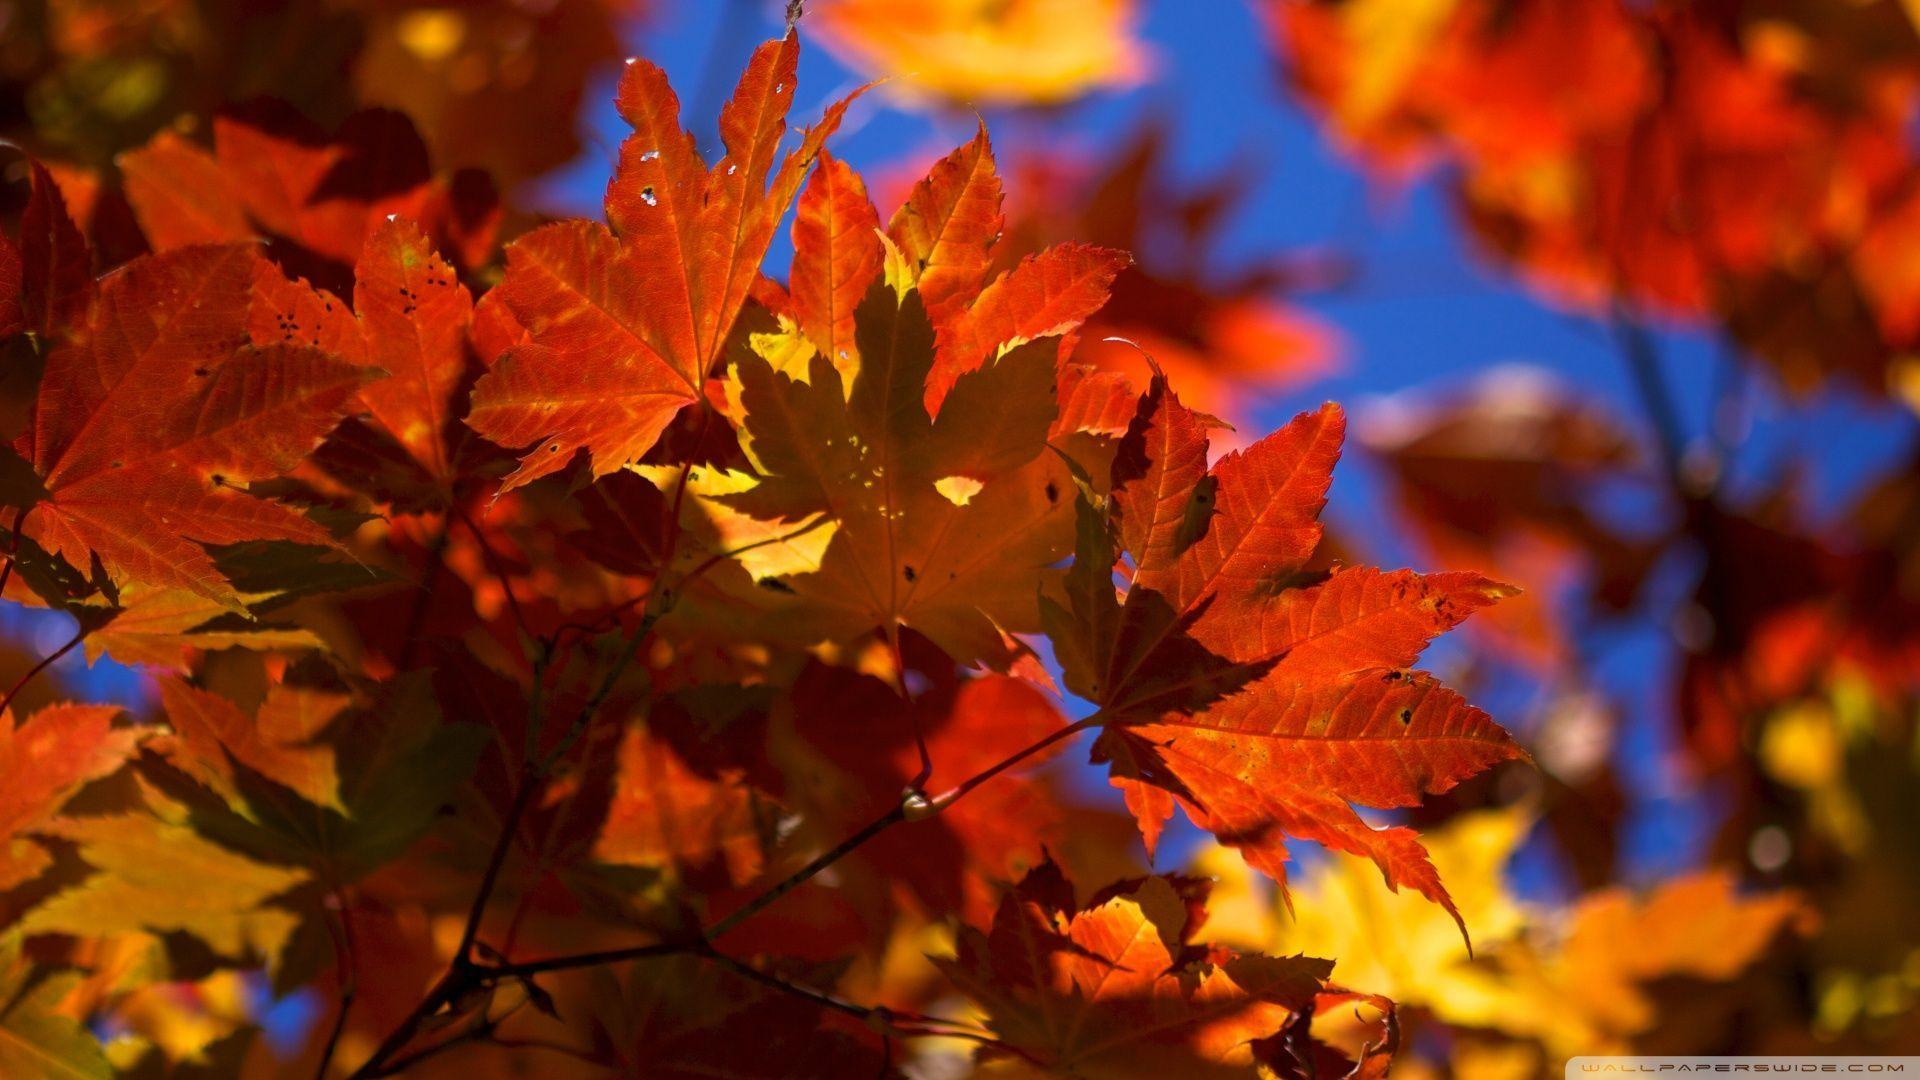 Leaves Autumn Wallpapers - Wallpaper Cave